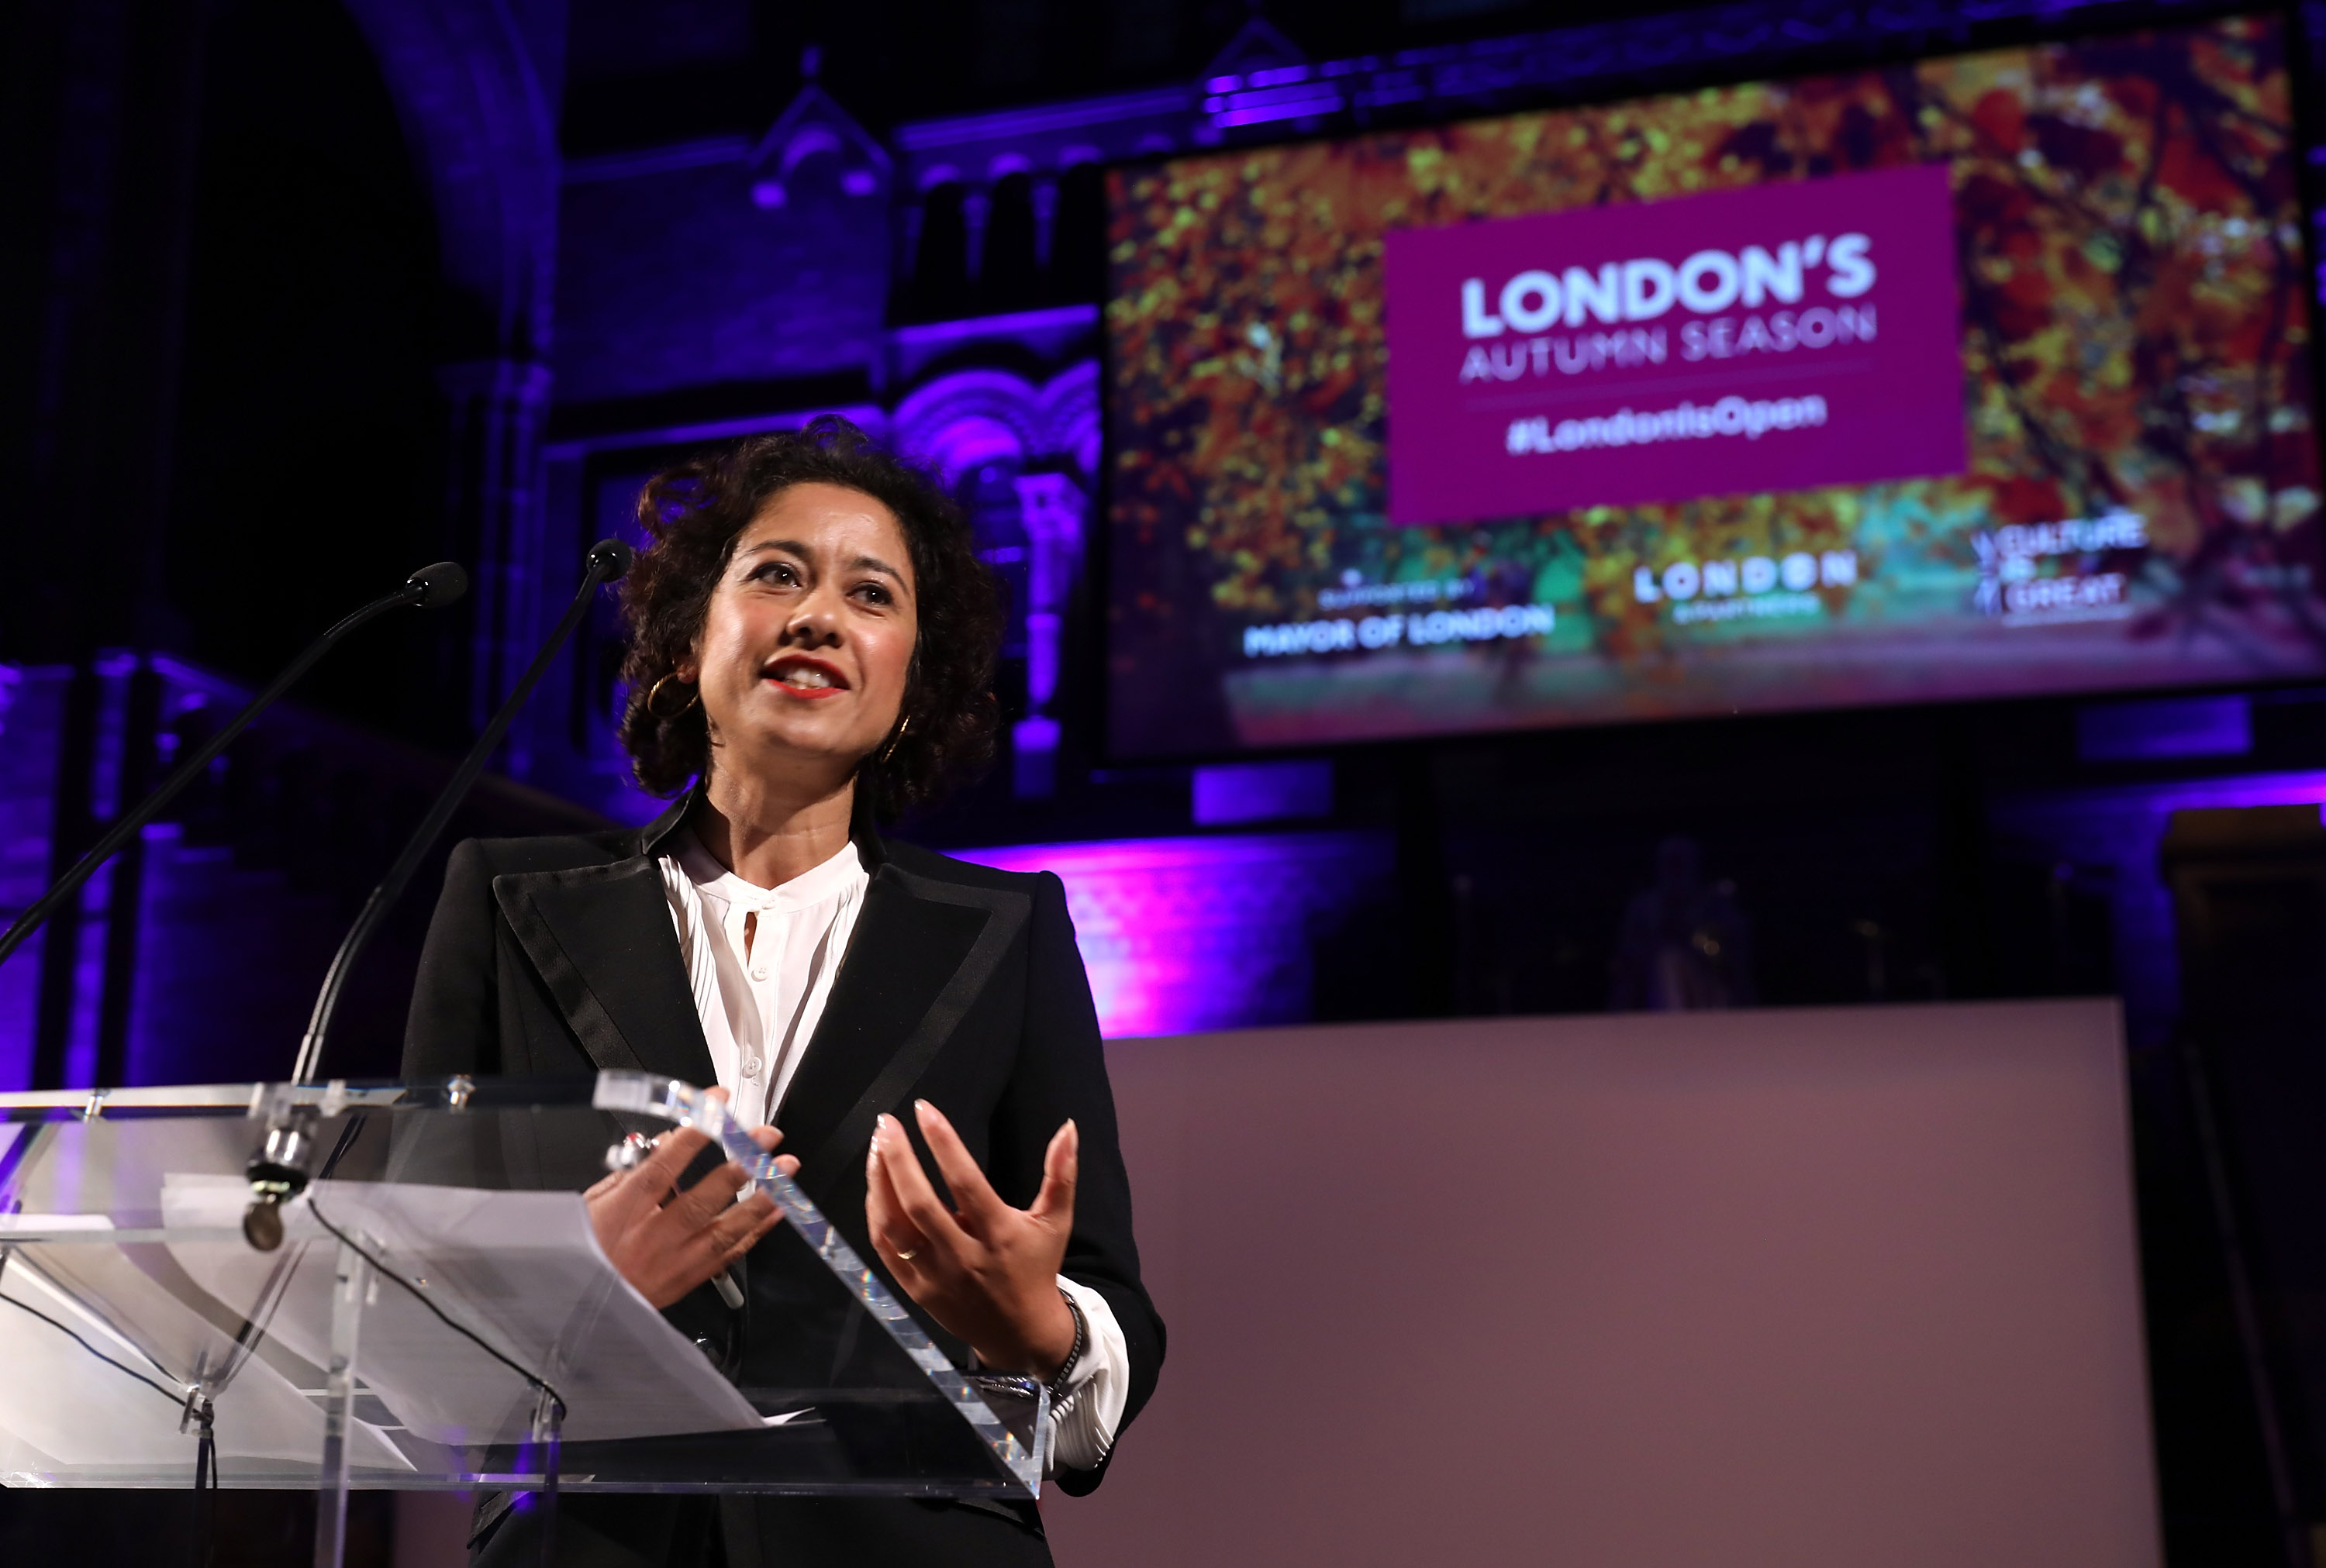 Journalist and broadcaster Samira Ahmed  (Photo by Tim P. Whitby/Tim P. Whitby/Getty Images)